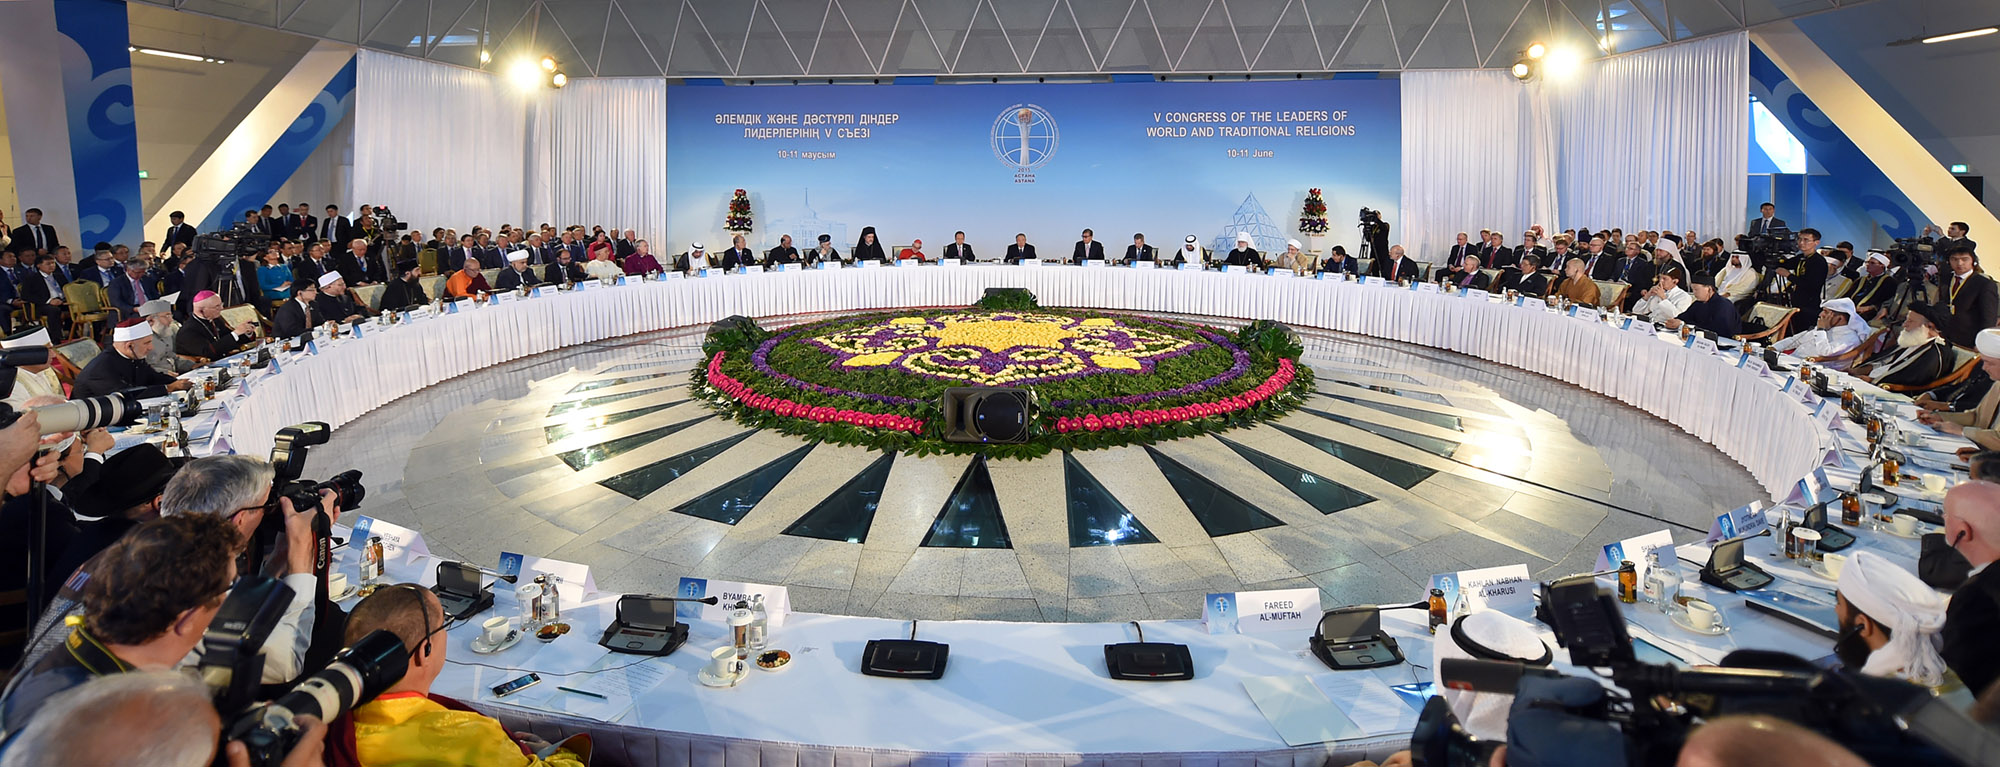 Congress of Religious Leaders Launches in Astana, Kazakh ...